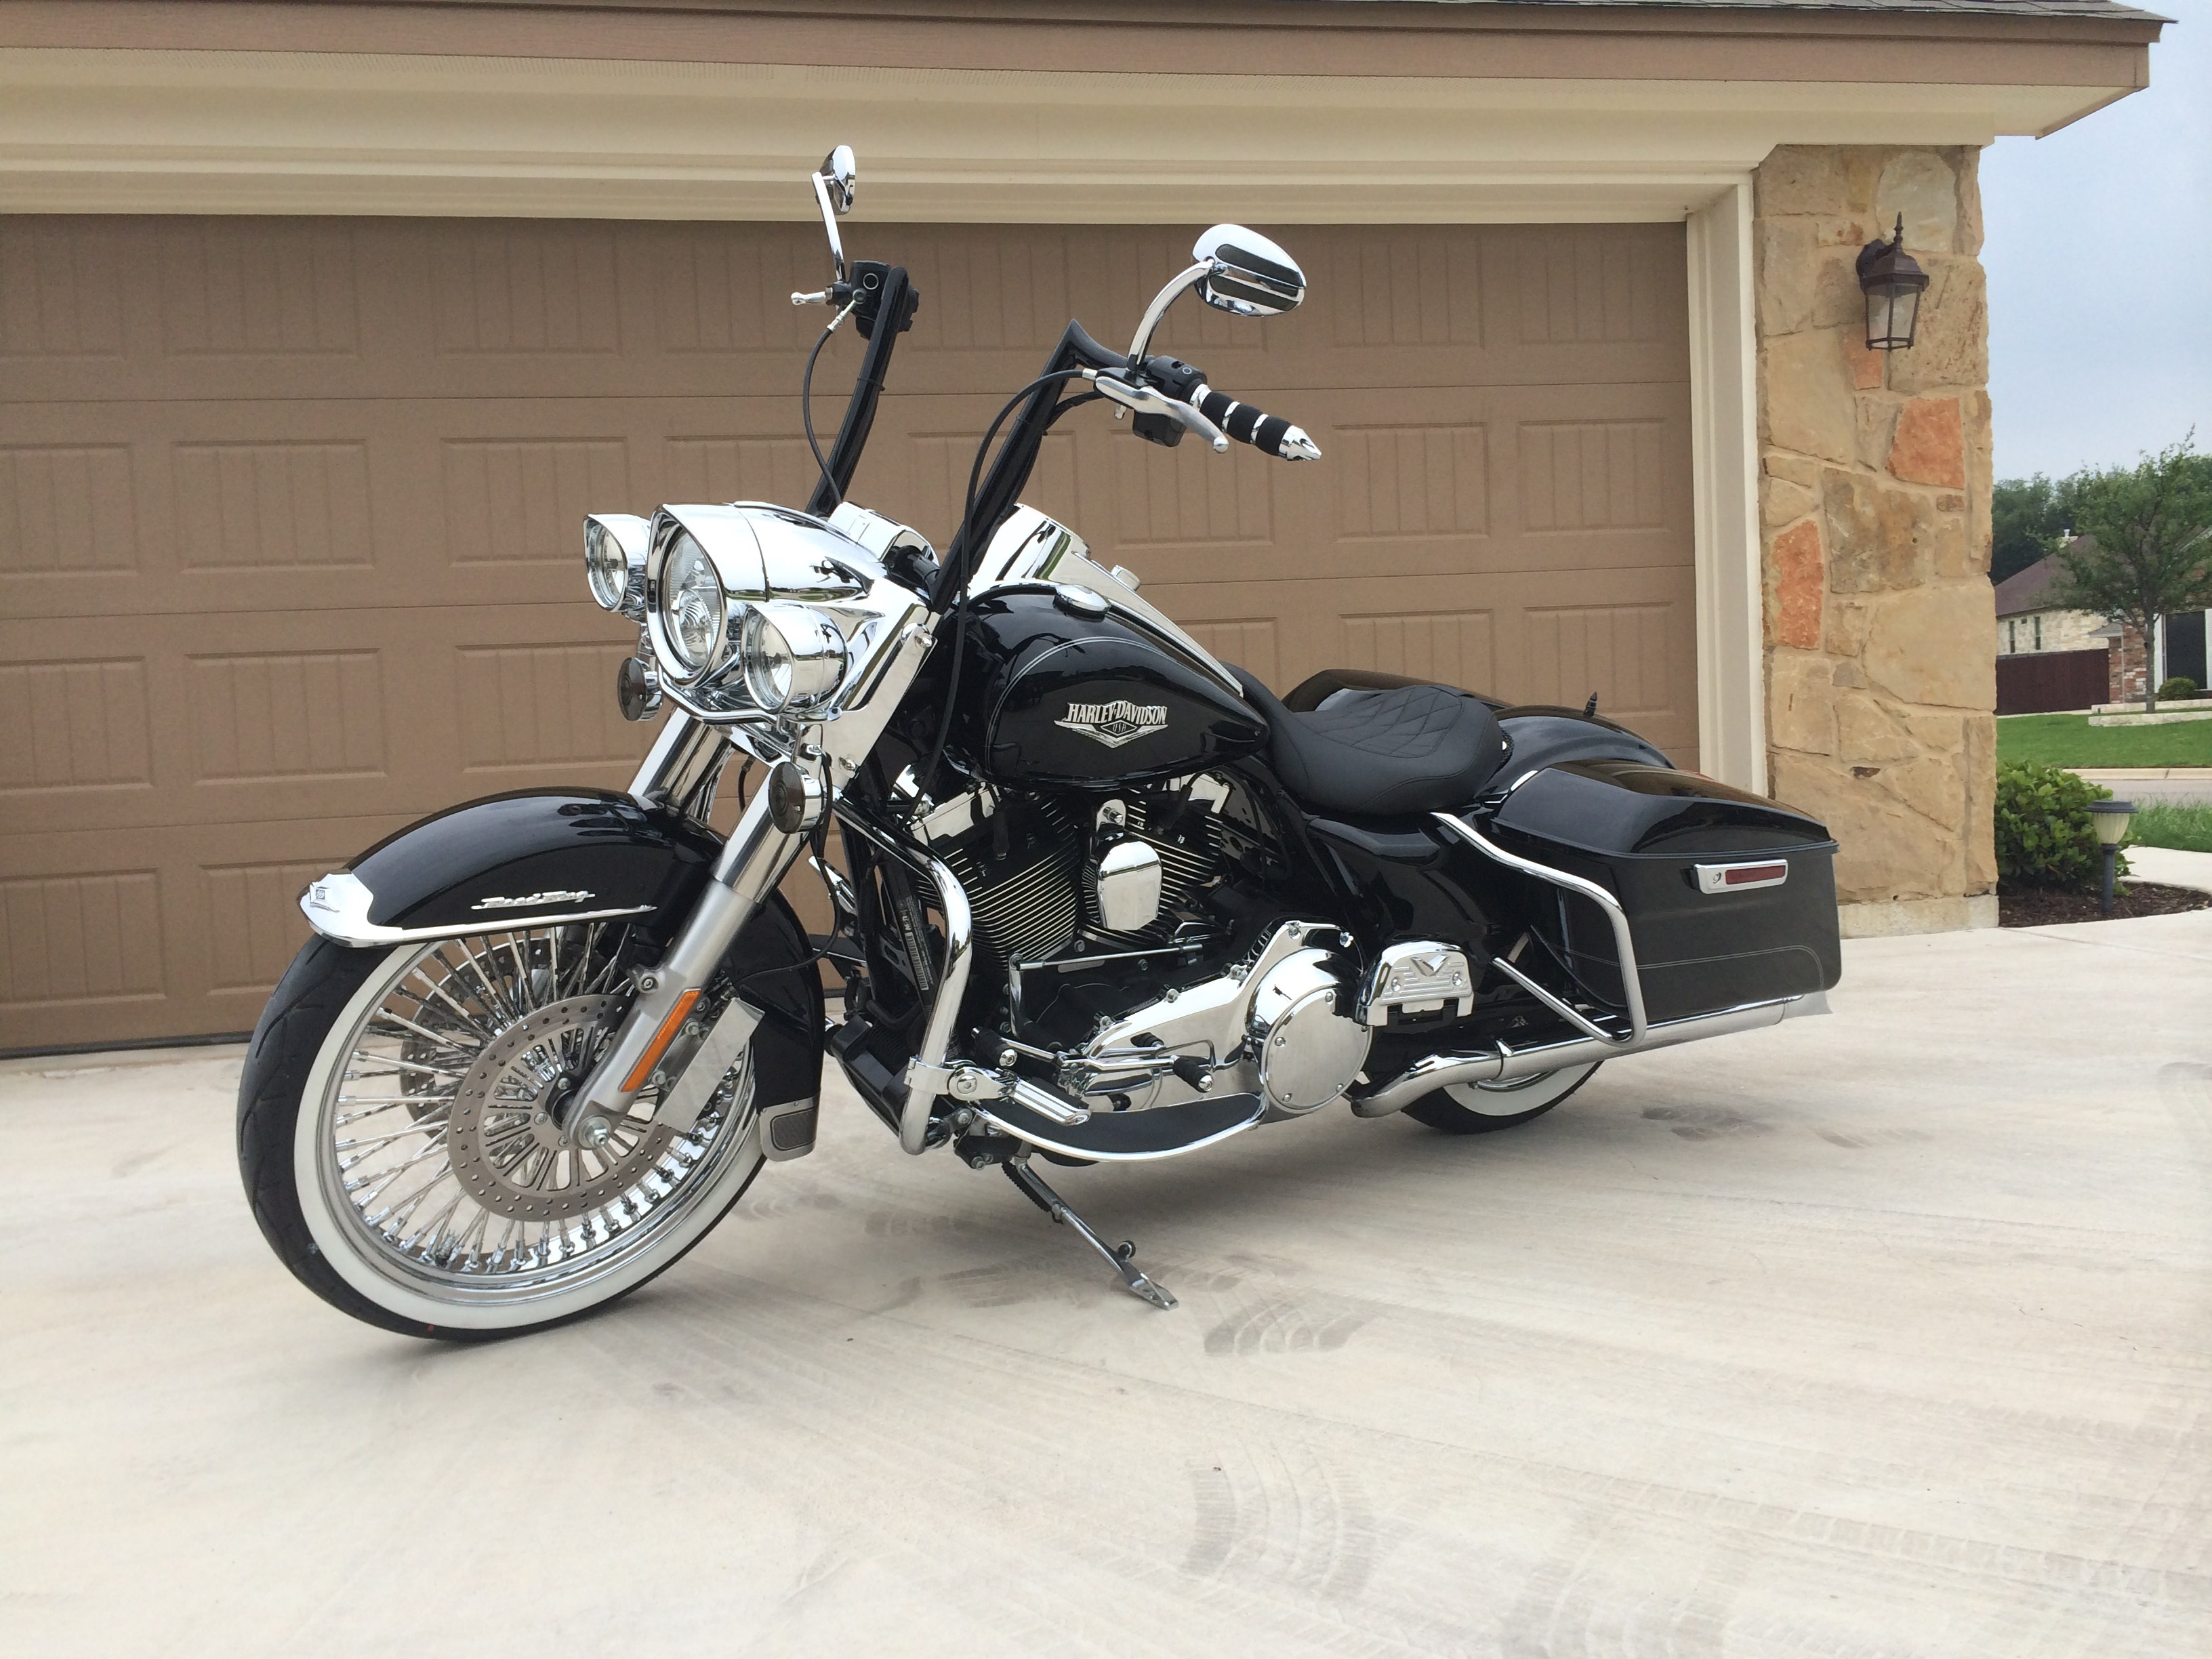 Harley Davidson Road King For Sale Mustang Ok >> 2014 Harley-Davidson® FLHR Road King® (Black), Lawton, Oklahoma (616649) | ChopperExchange